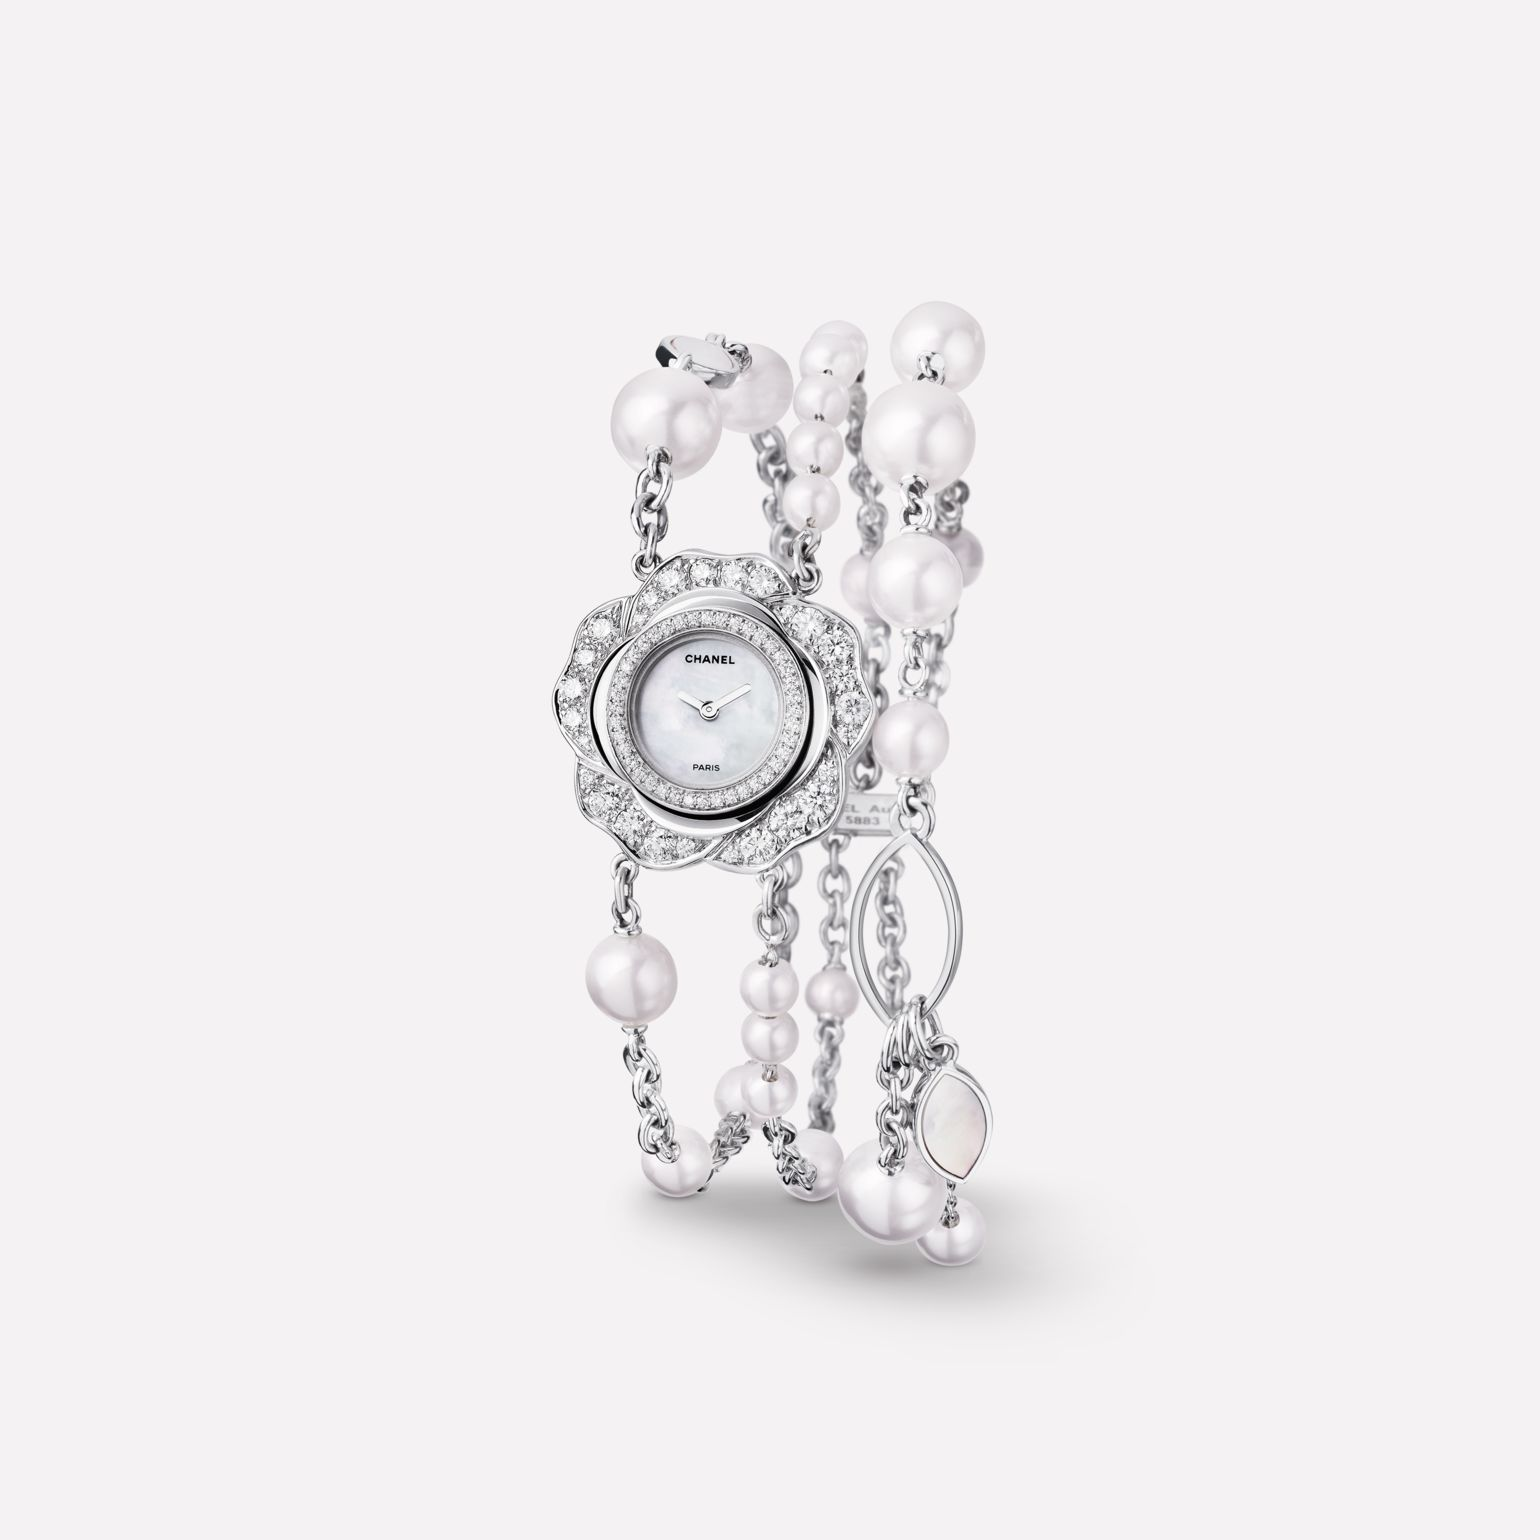 Camélia Jewellery Watch Watch with Bouton de Camélia motif in 18K white gold, diamonds and cultured pearls